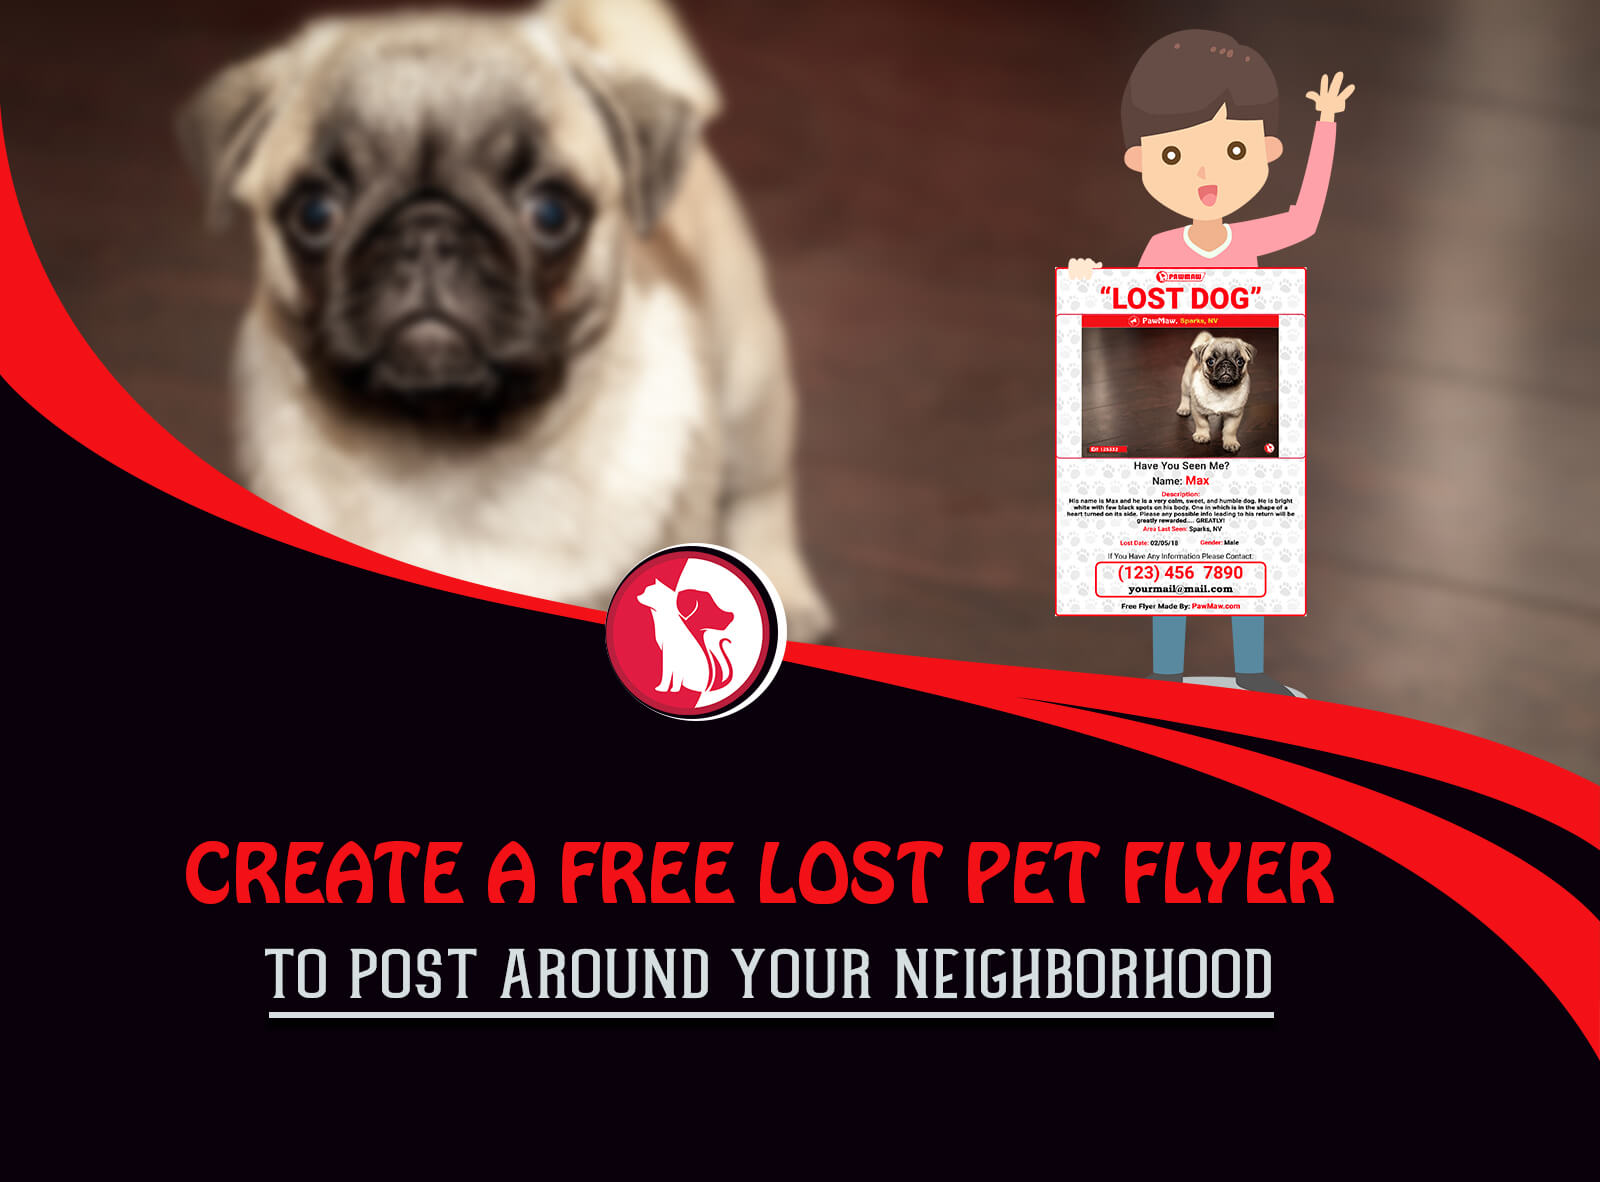 CREATE A FREE HIGH-QUALITY LOST PET FLYER TO POST AROUND YOUR NEIGHBORHOOD